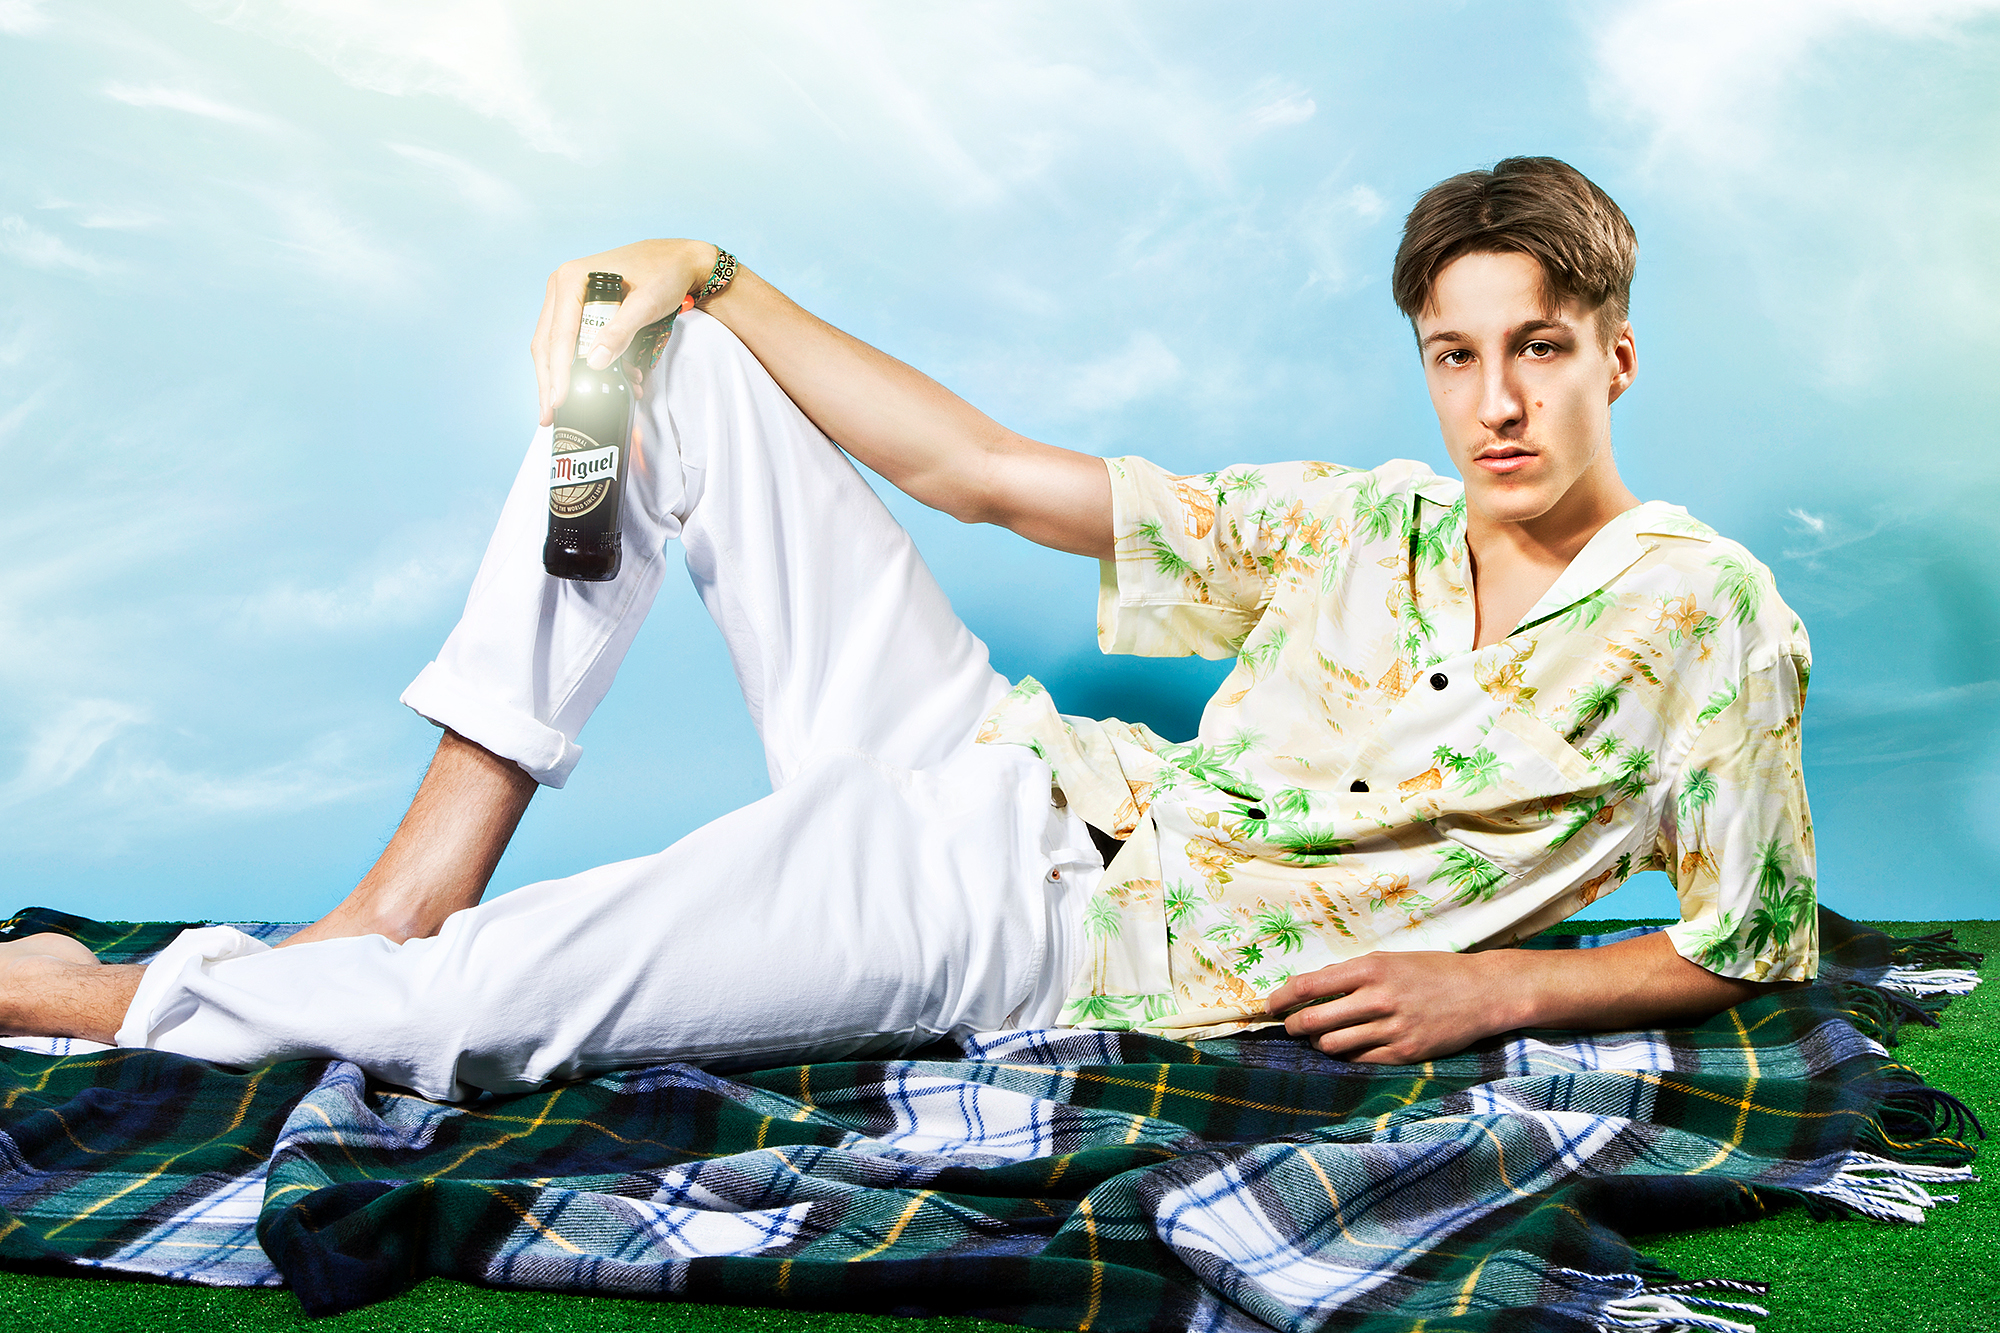 Photography by Kev Foster for Philip Browne_SS18 Lookbook_14.jpg